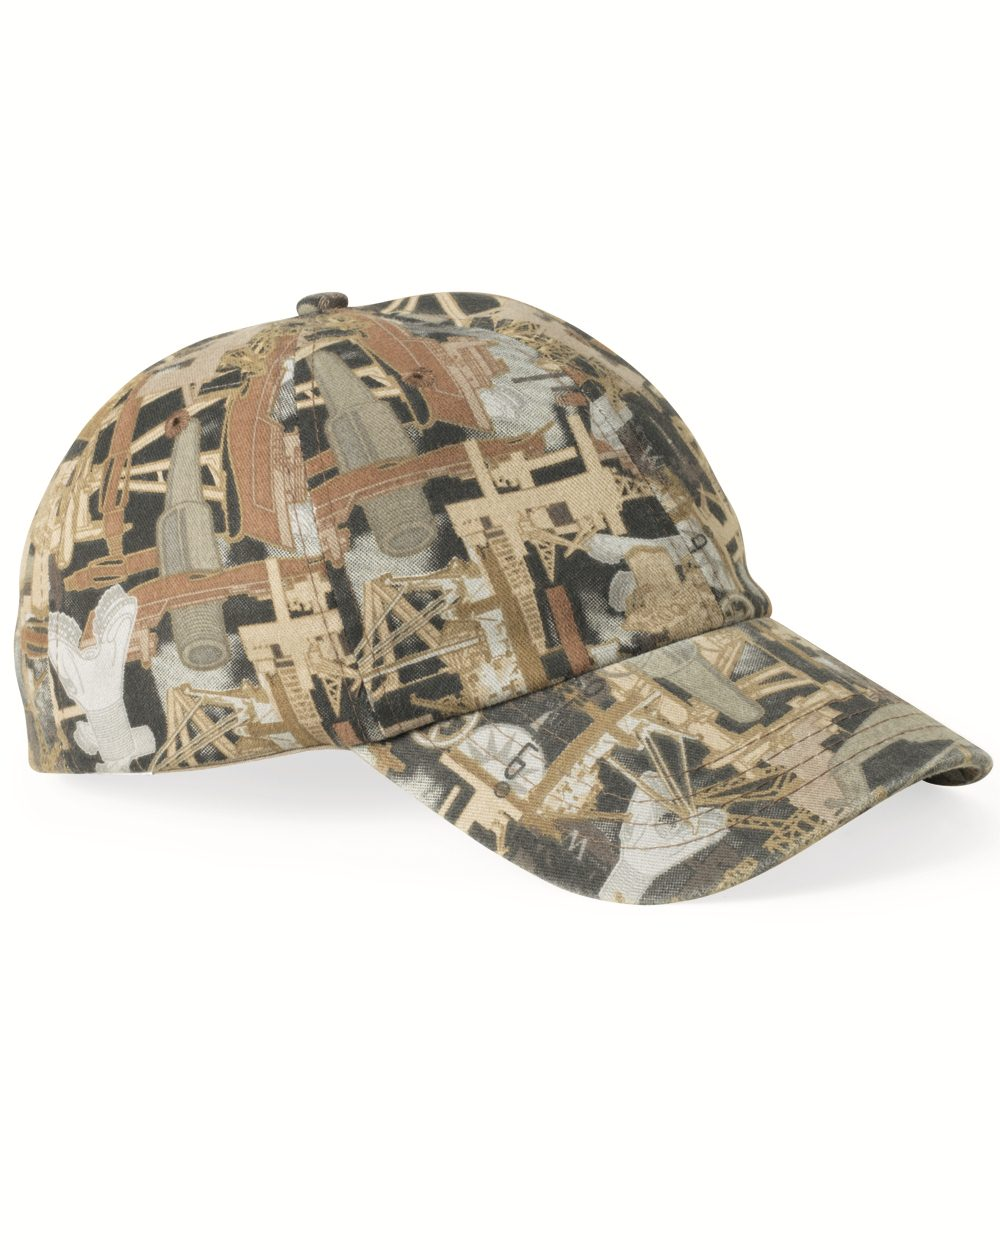 Kati OIL15 - Oilfield Camo Cap  4.21 - Accessories f9a56039f75